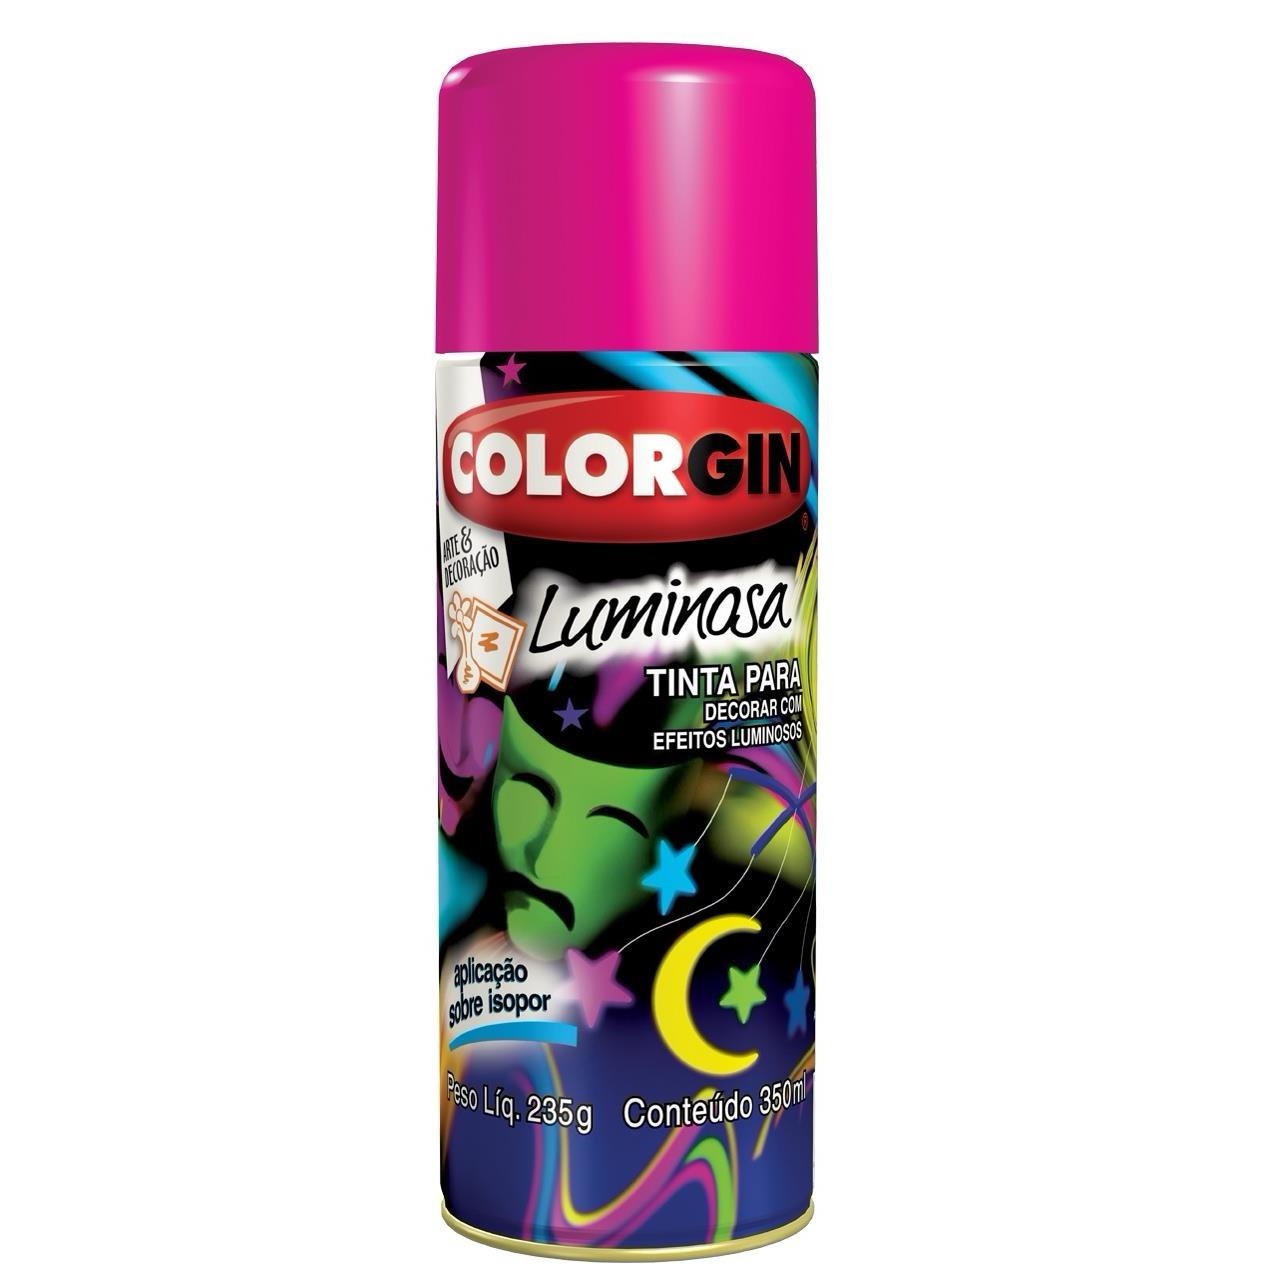 Tinta Spray Fosco Luminosa Interno - Vermelho - 350ml - Colorgin